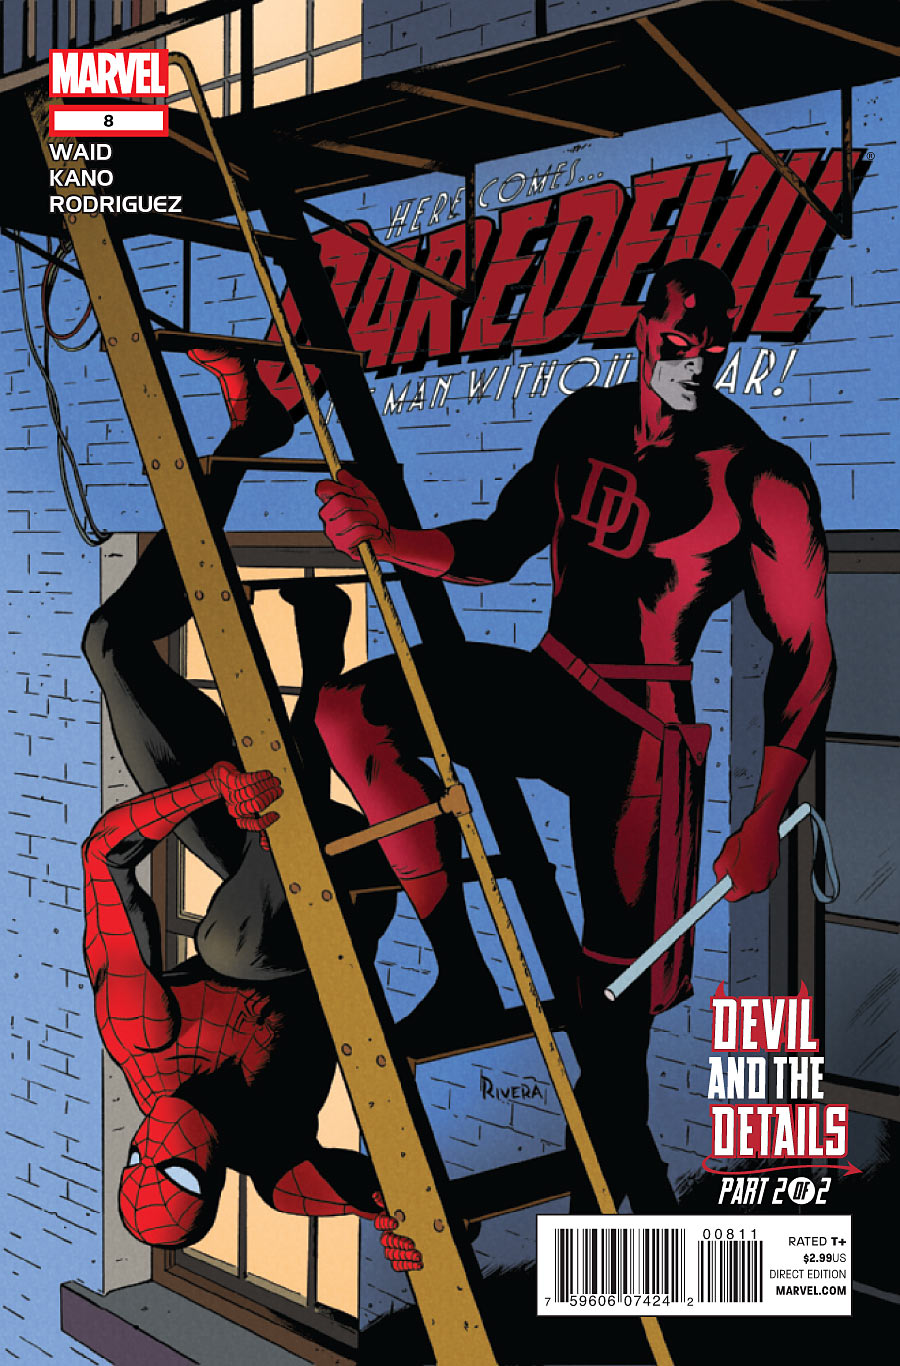 Daredevil vol 3 8 marvel comics database